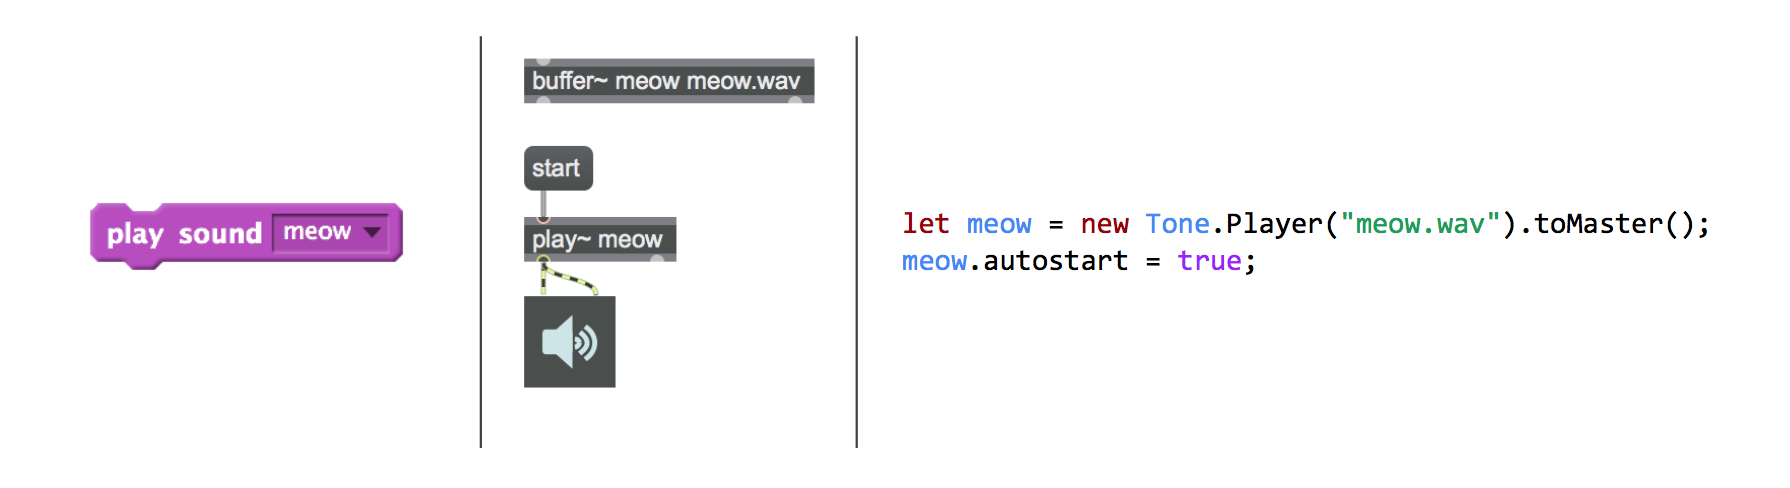 Three screenshots of code side by side. Left: a single Scratch block with the text 'play sound meow.' Center: four grey Max MSP blocks. Right: two lines of Javascript code.